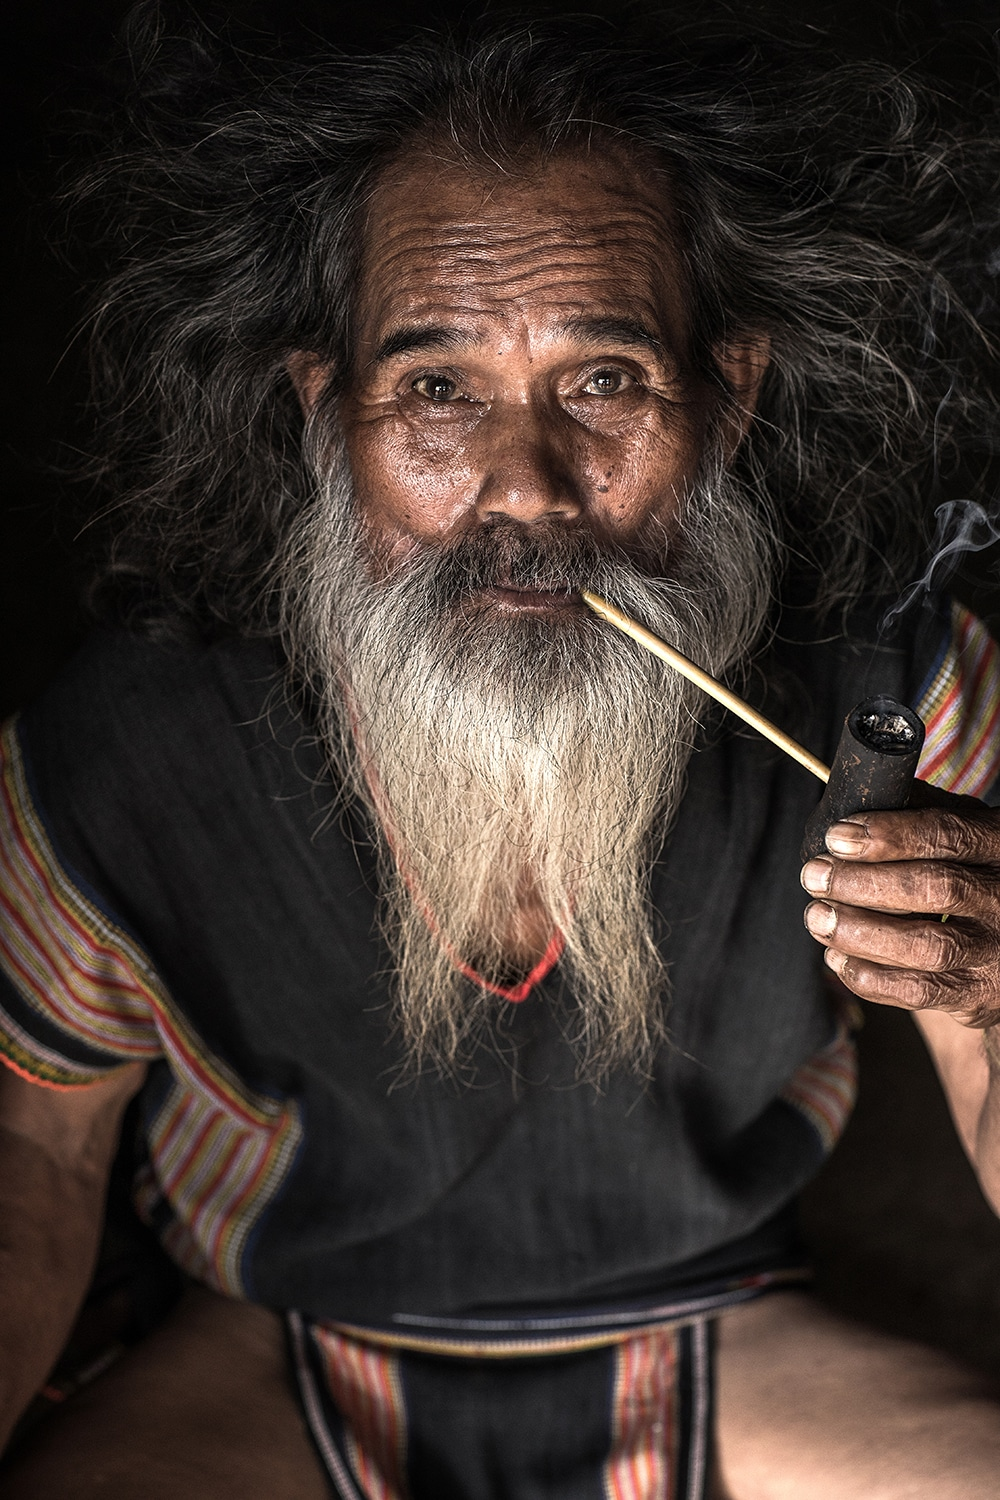 Portrait of a Man from the Xo Dang Ethnic Tribe in Vietnam by Réhahn